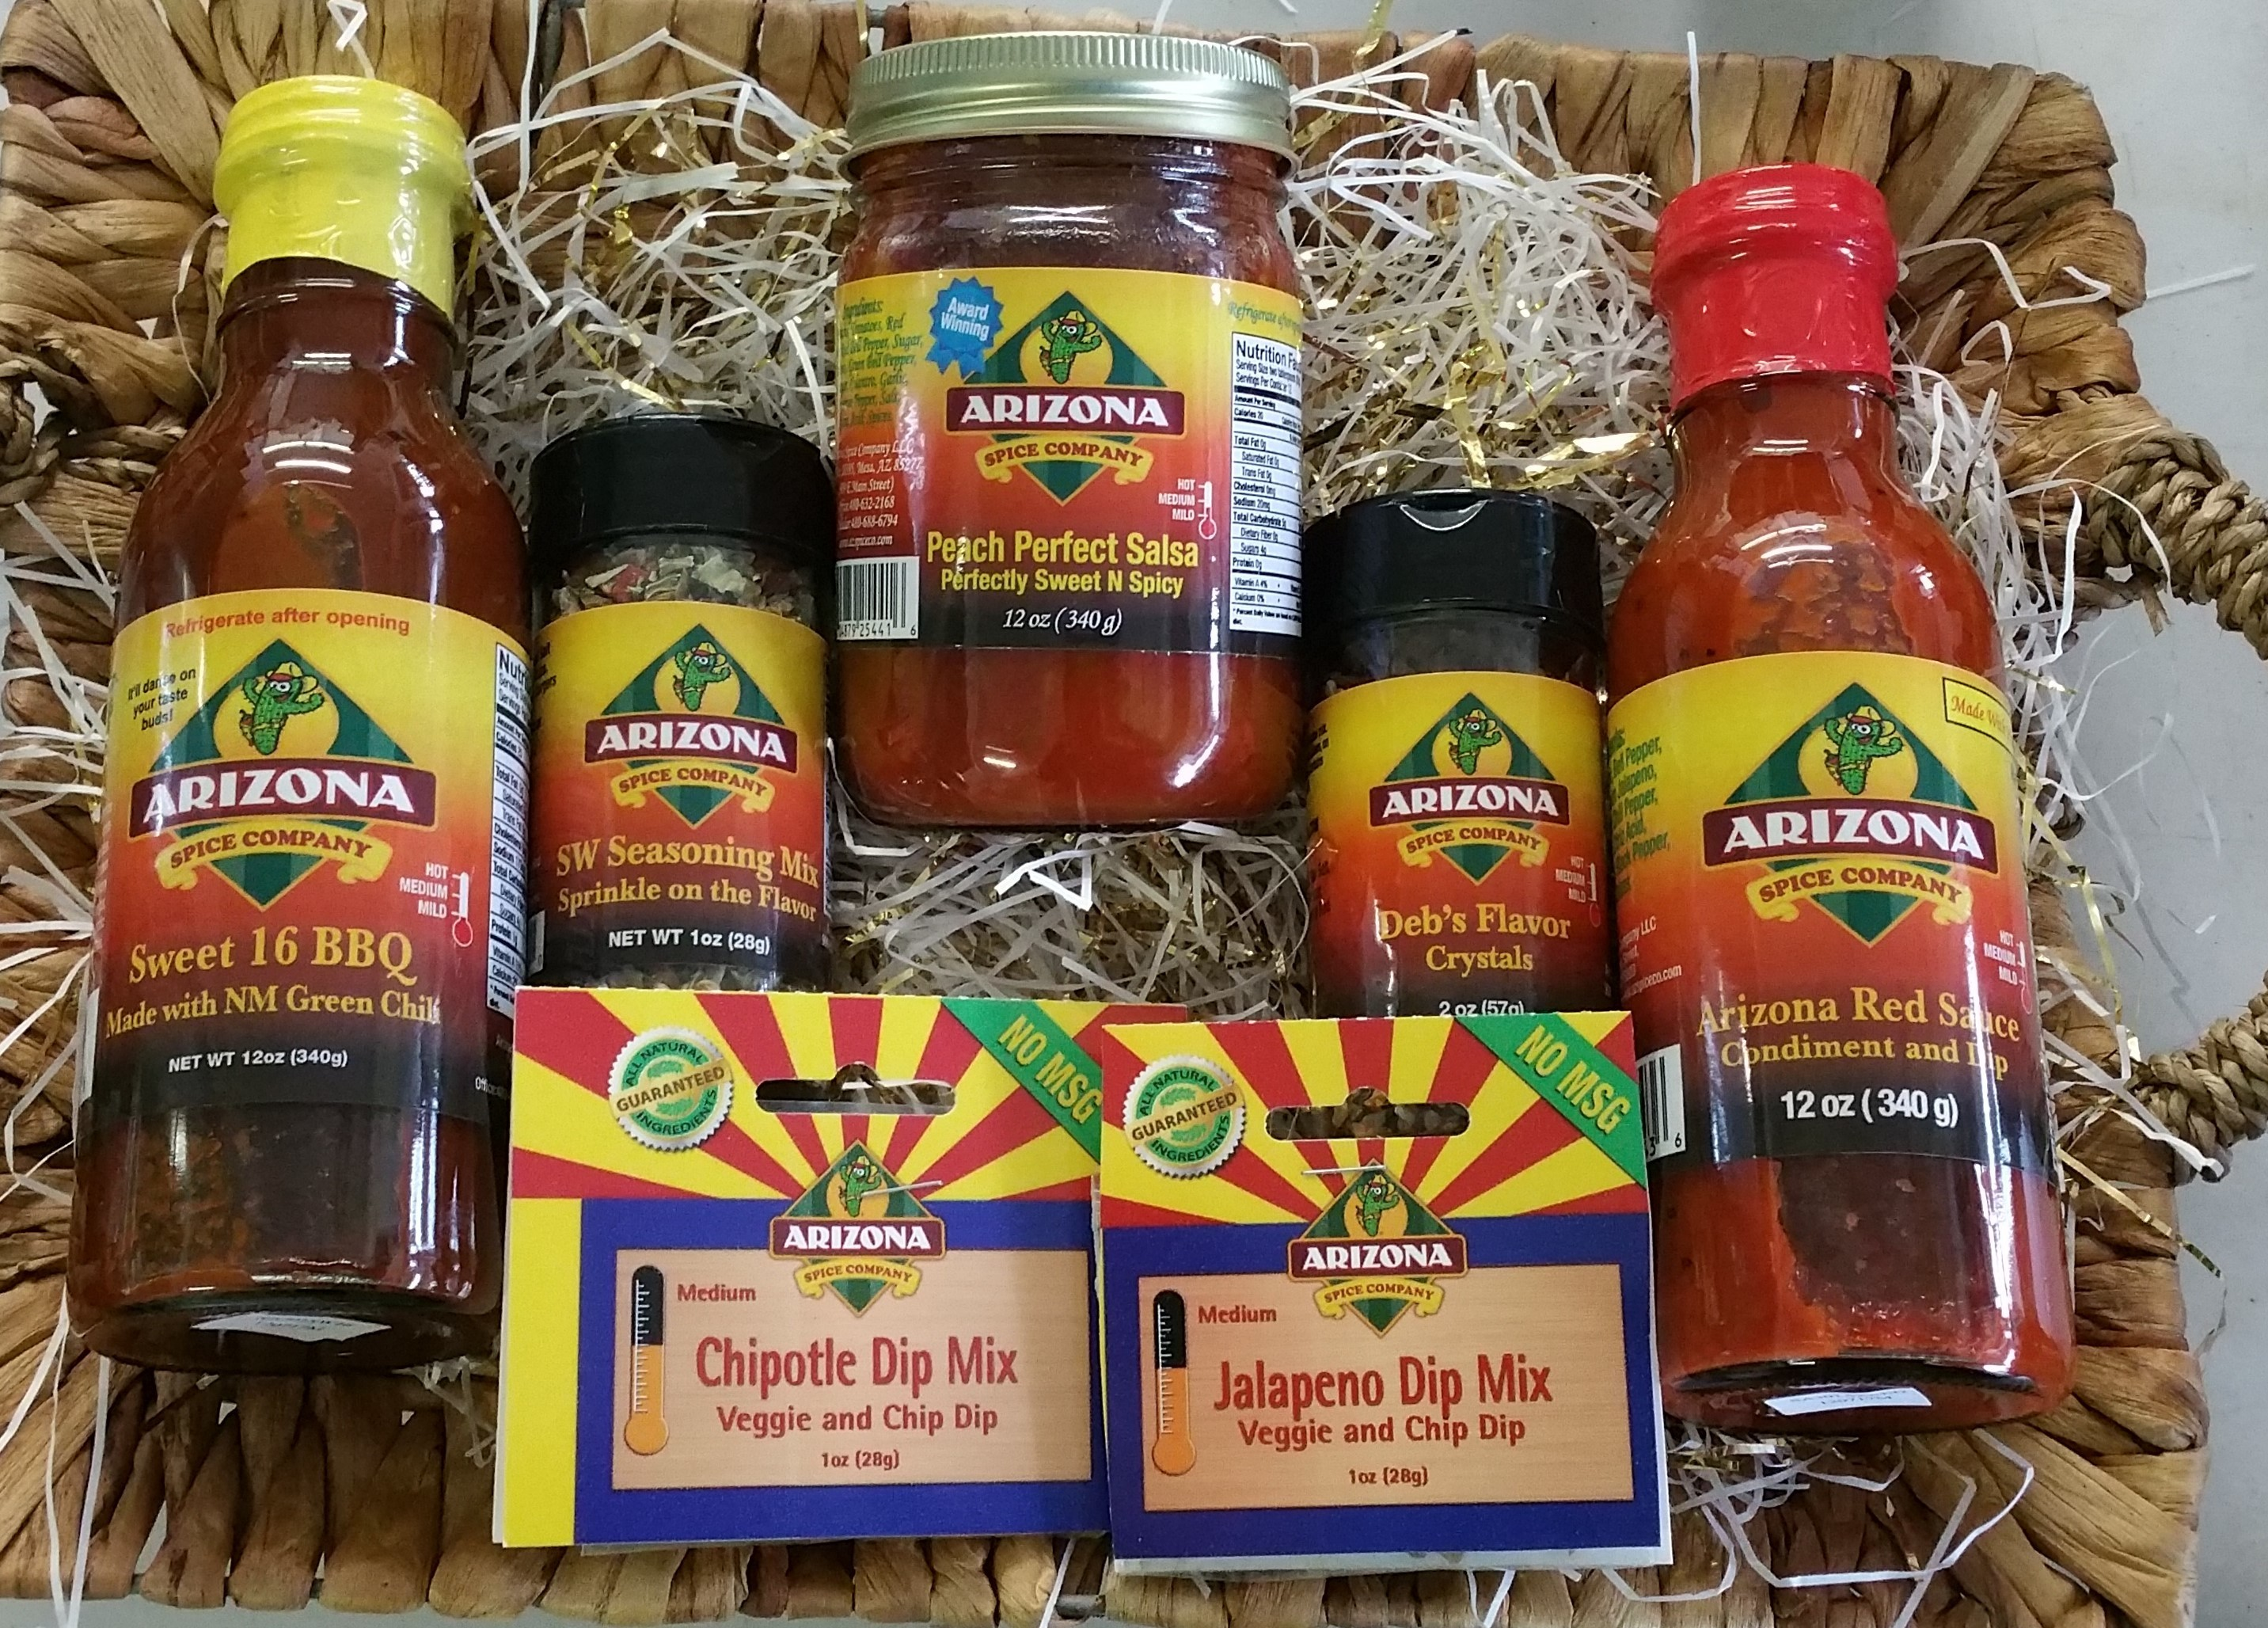 Sonoran spice company coupon code